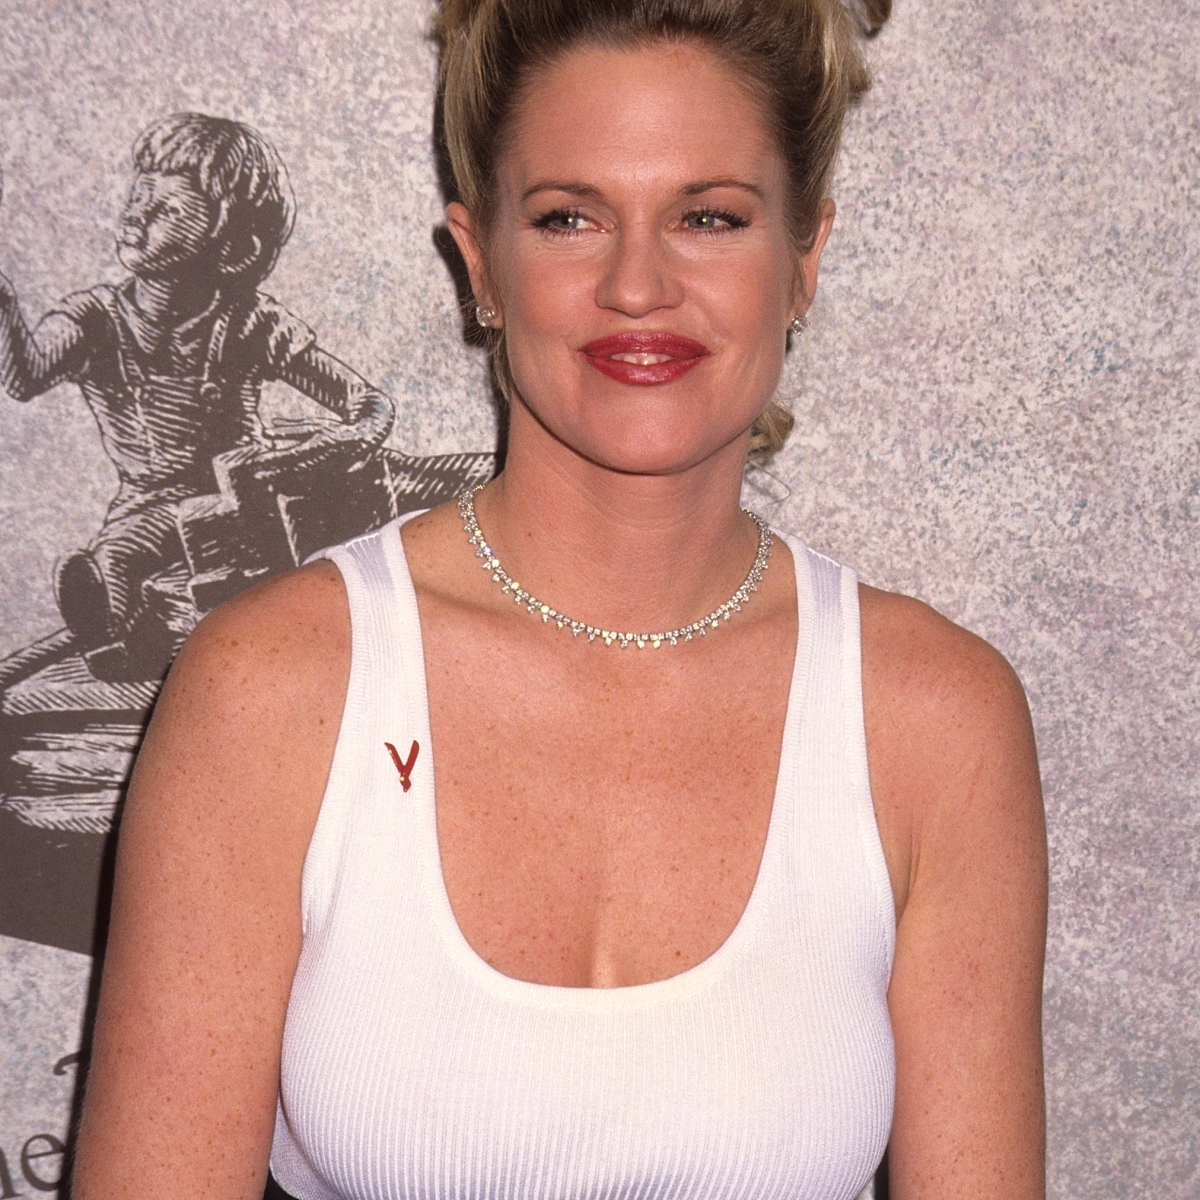 Melanie Griffith S Plastic Surgery Disaster Find Out What Went Wrong